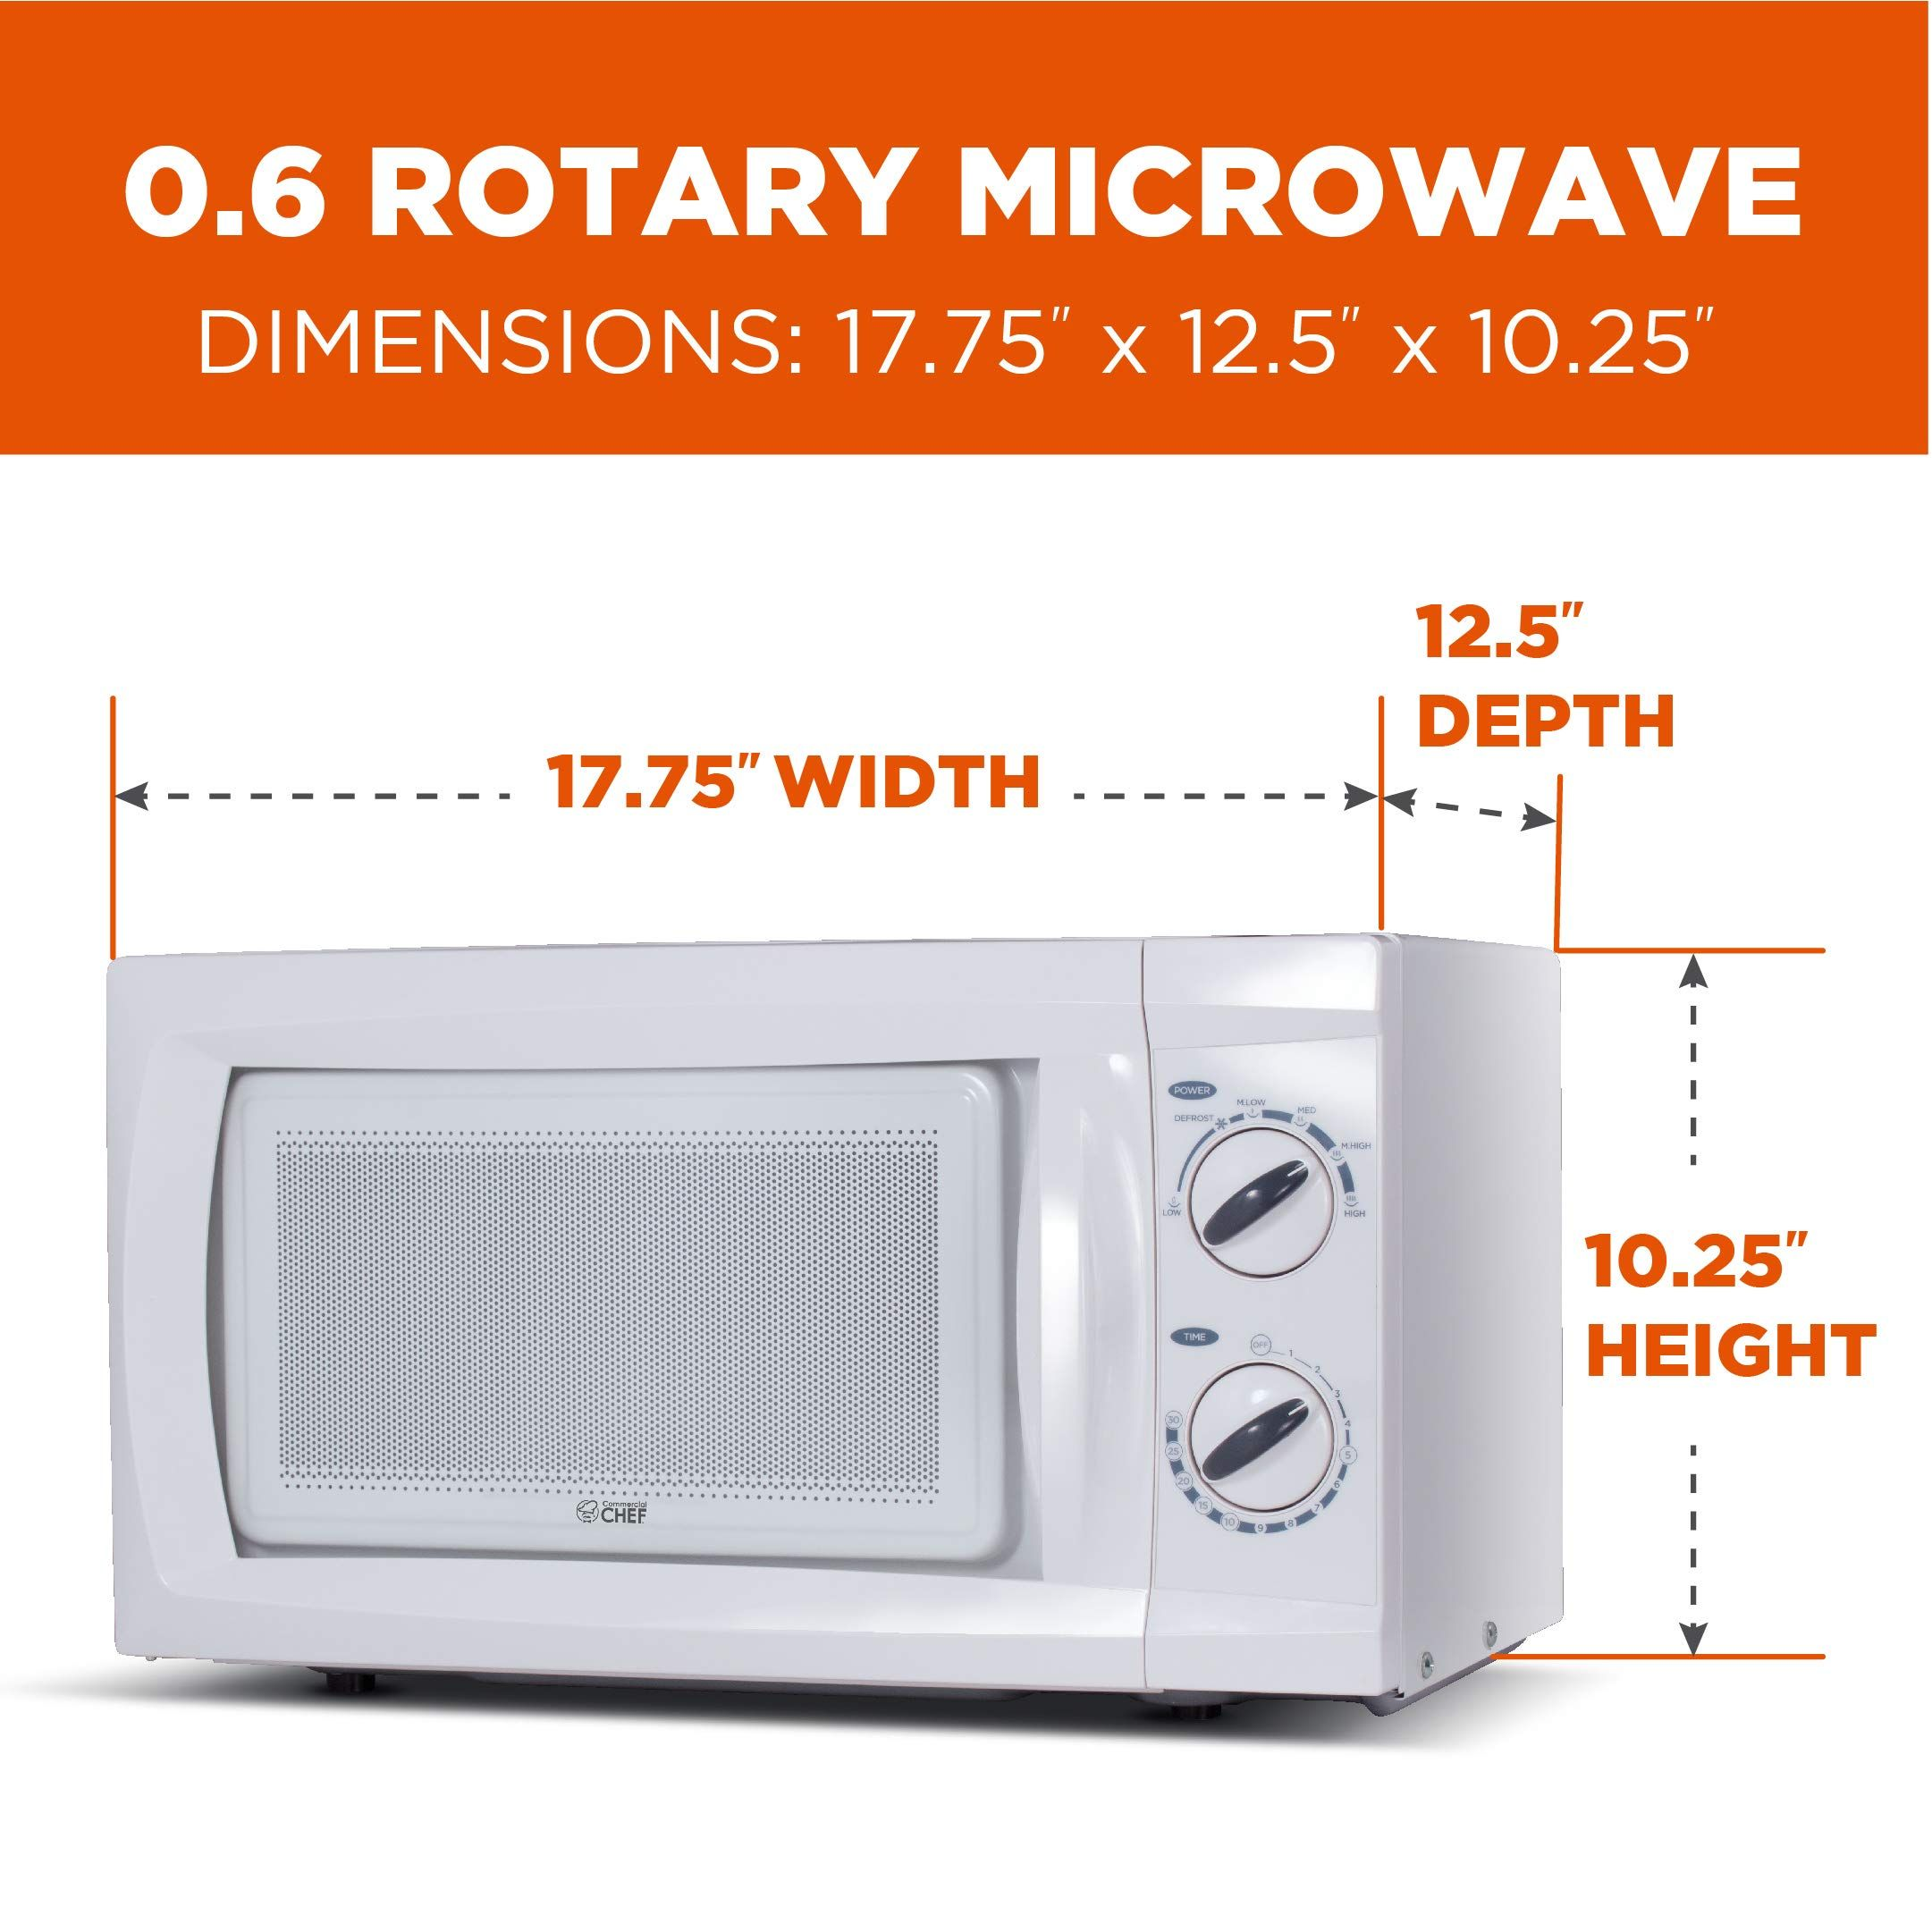 Commercial Chef Counter Microwave Chm660w In 2020 Microwave Microwave Oven Microwave Dimensions